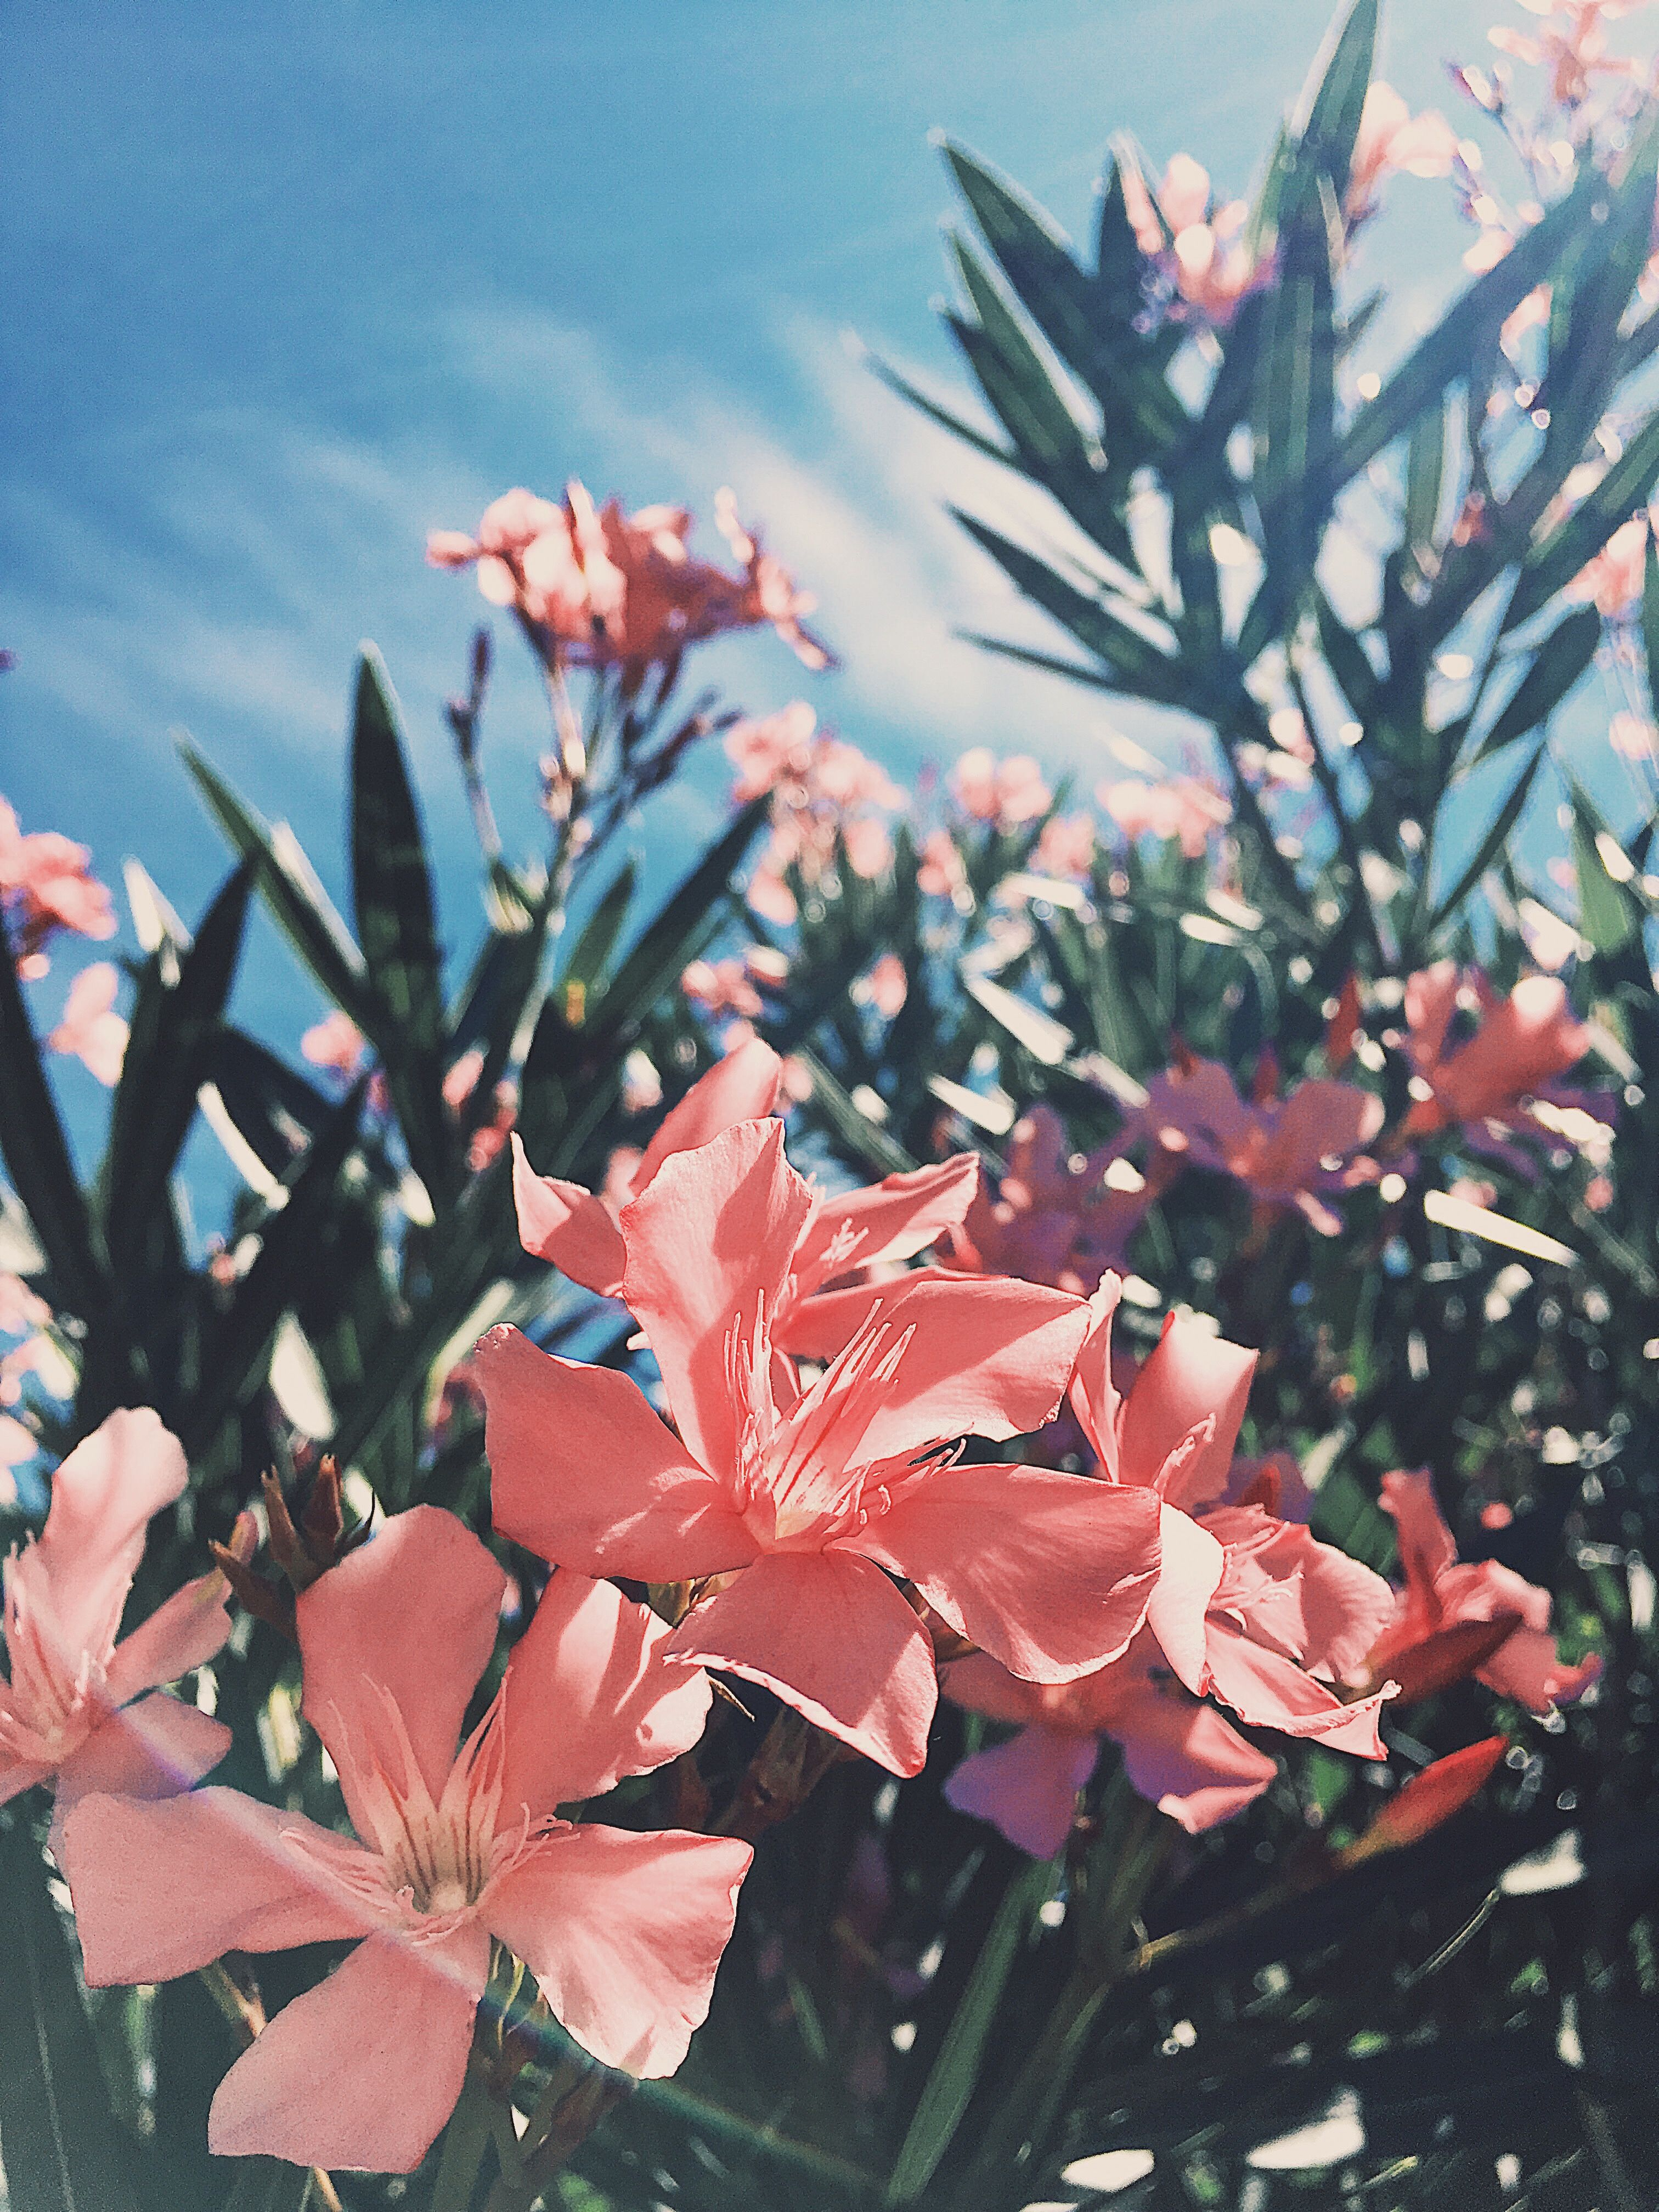 peachy pink flowers with the backgrounds of cloudy blue skies. an